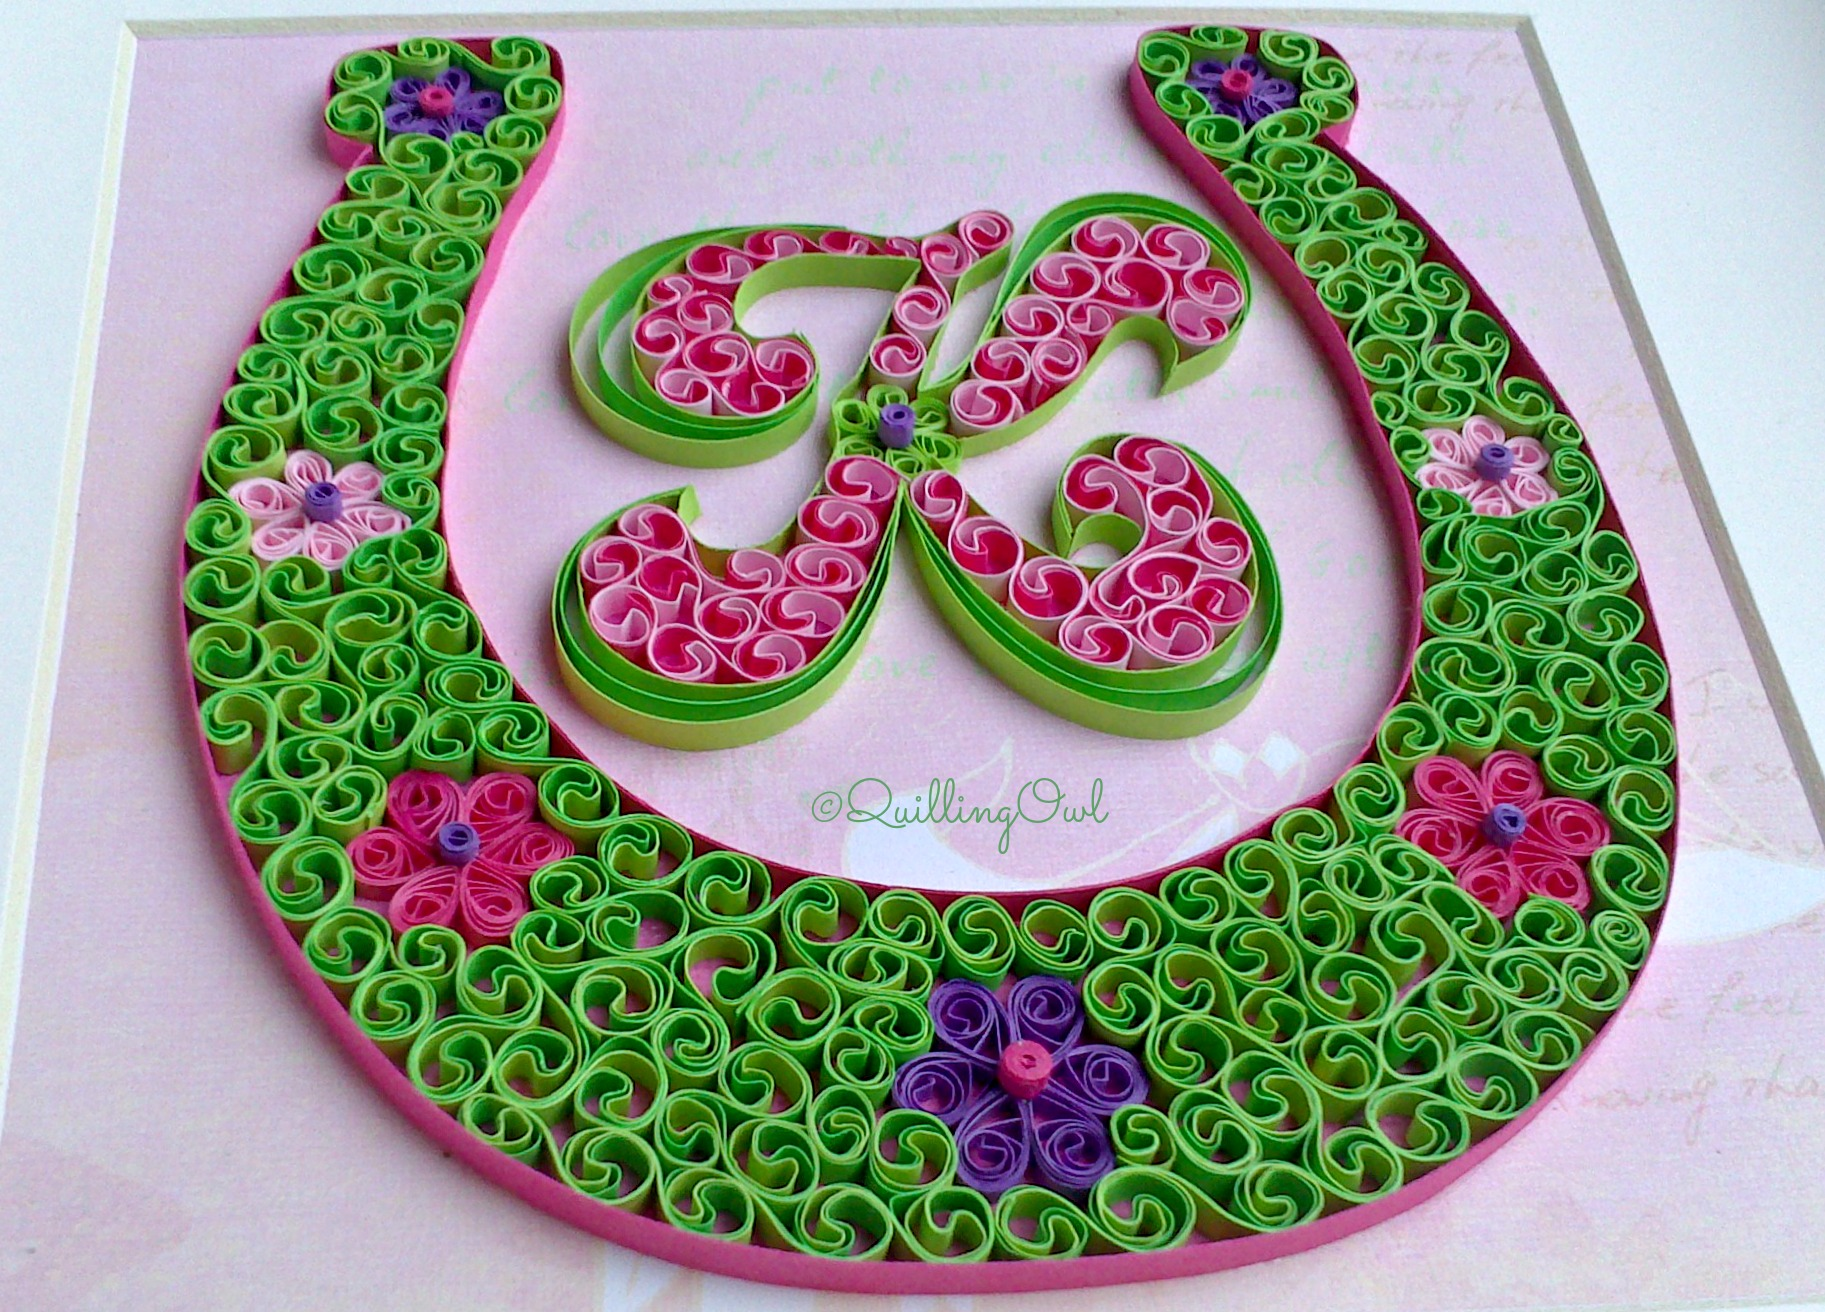 LucKy Charm, paper quilling